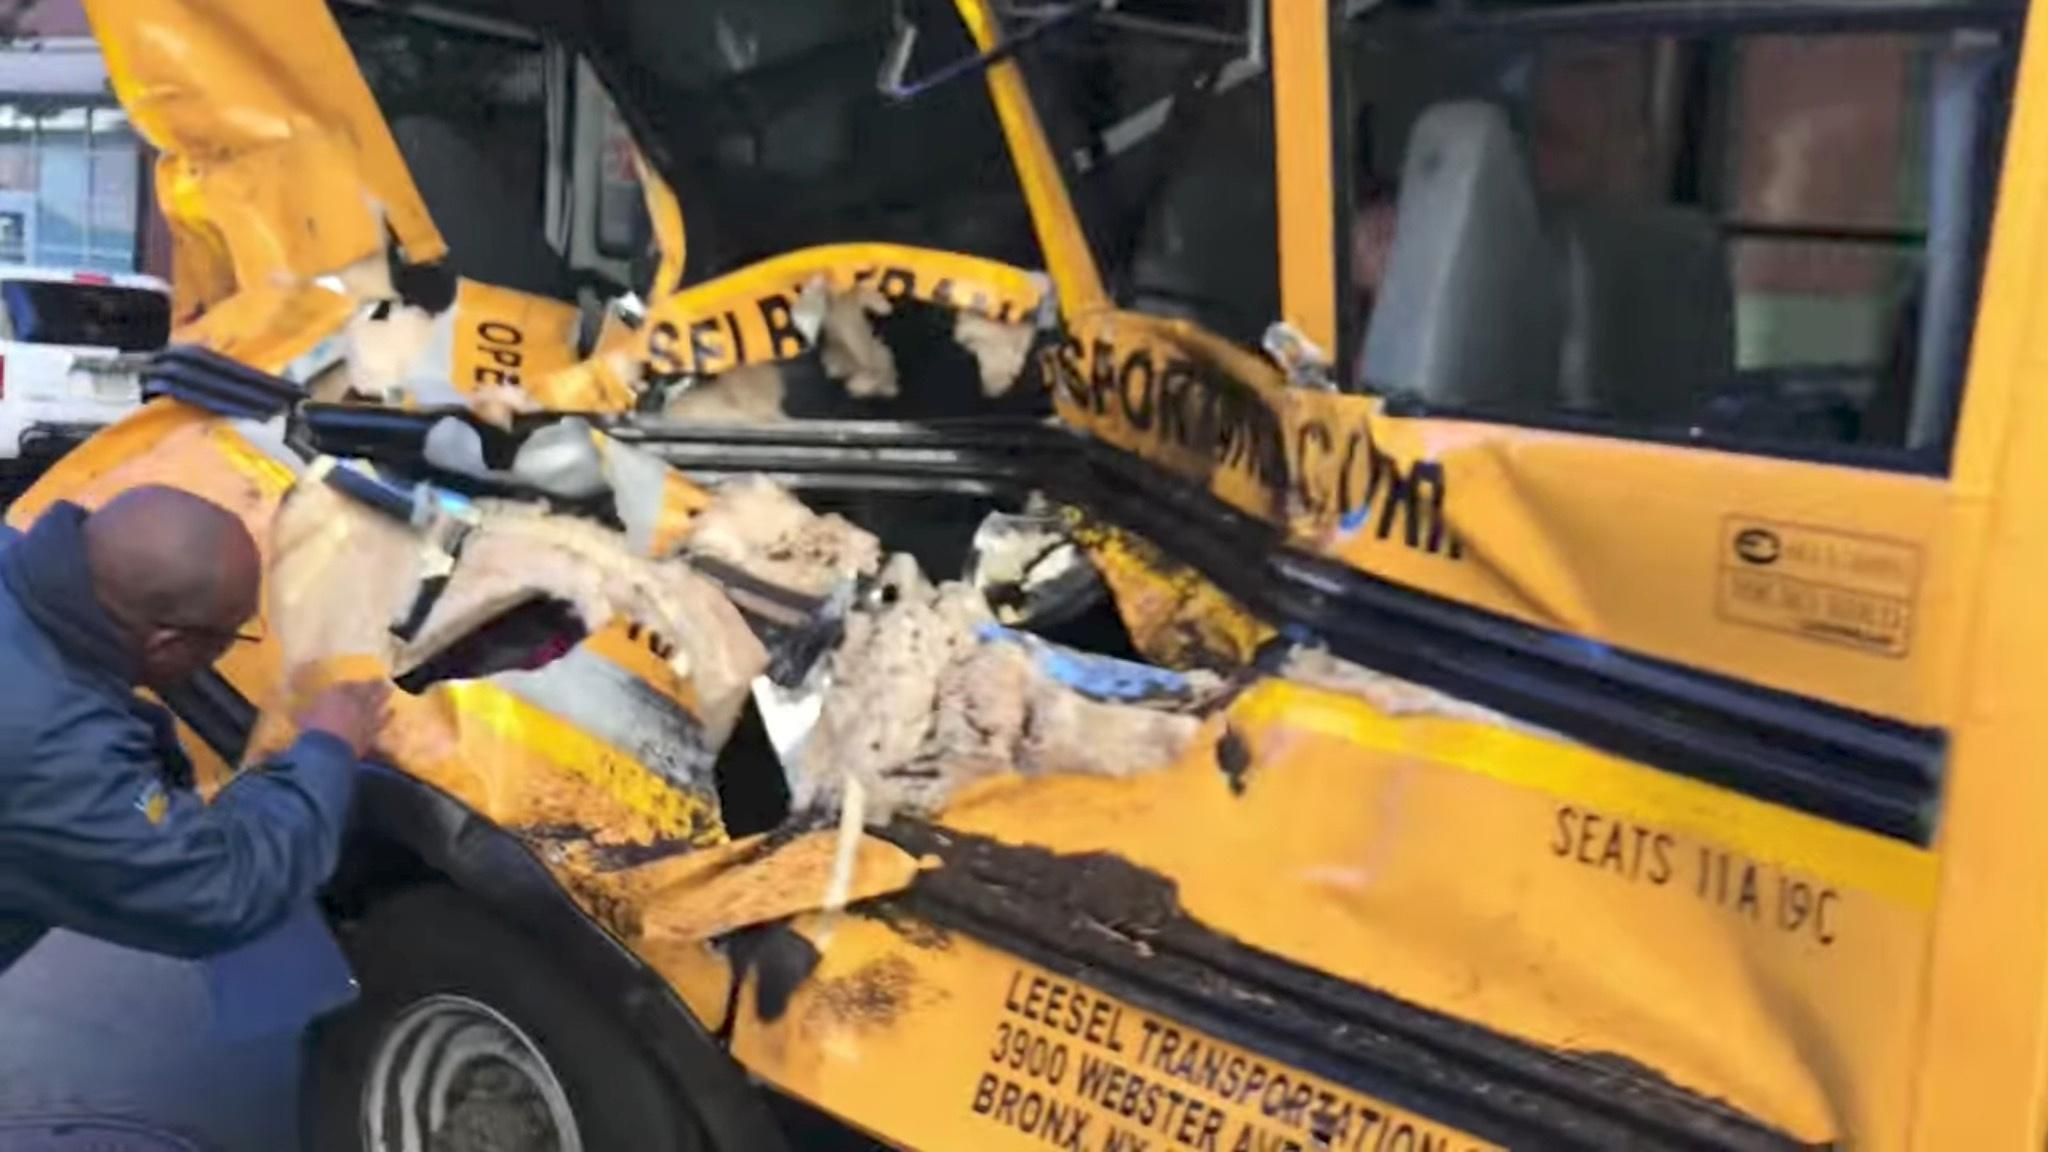 <p>A damaged school bus is seen at the scene of a pickup truck attack in Manhattan, New York, Oct. 31, 2017 in this picture obtained from social media. (Photo: Sebastian Sobczak/Reuters) </p>